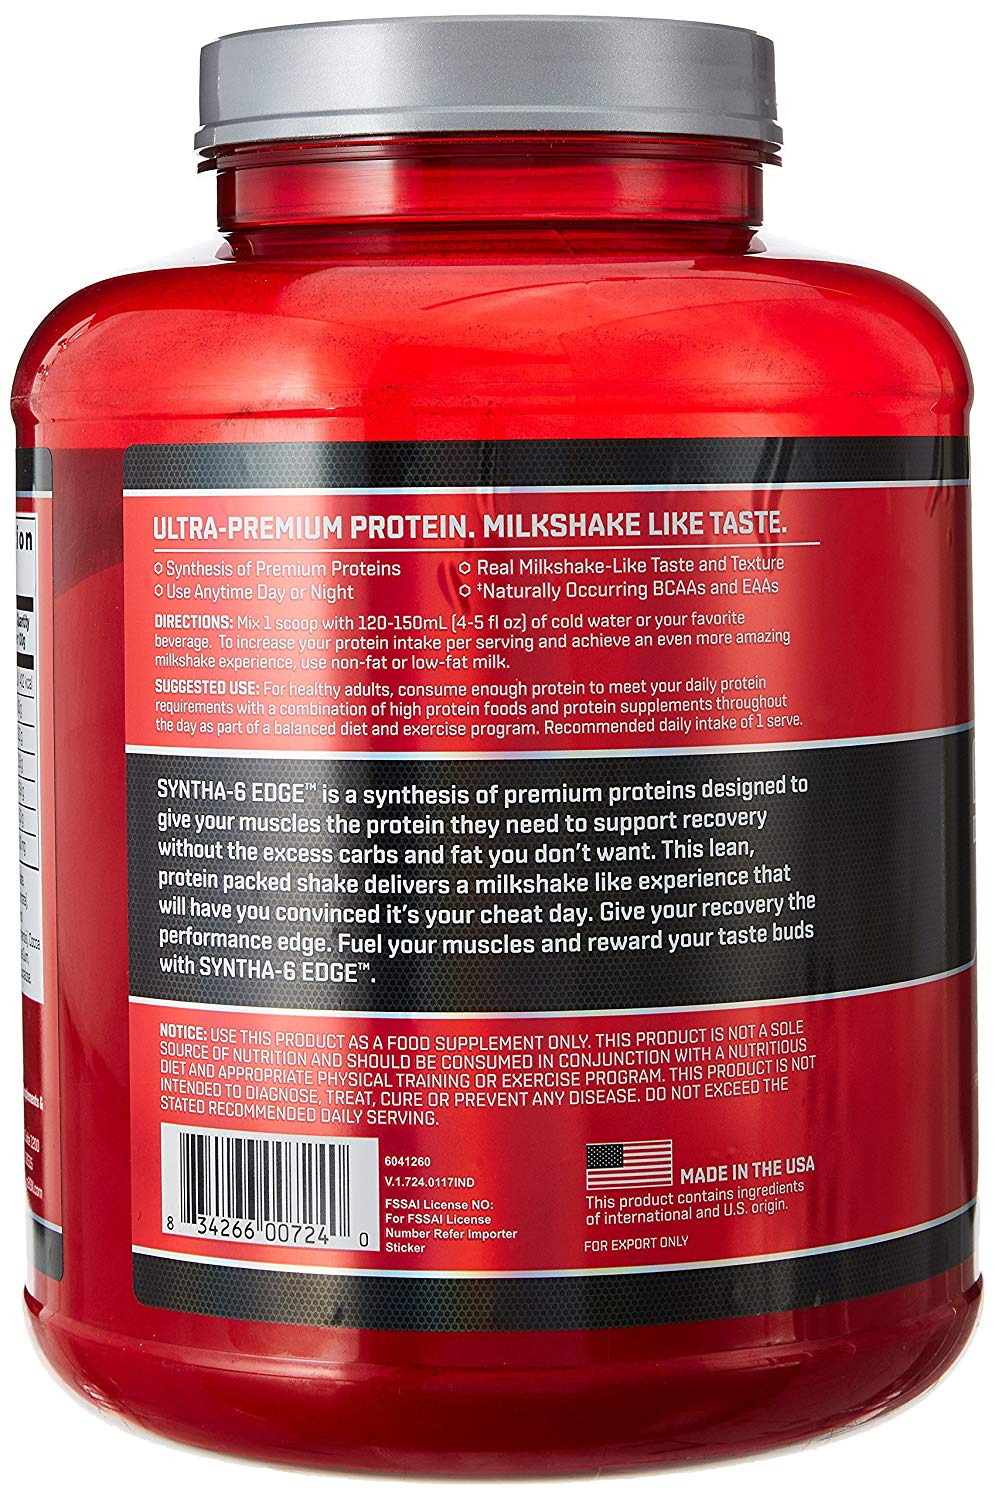 Bsn Syntha 6 Edge Protein Powder 4 02 Lbs 1 82kg Beast Fit Nutrition 100 Genuine Supplements